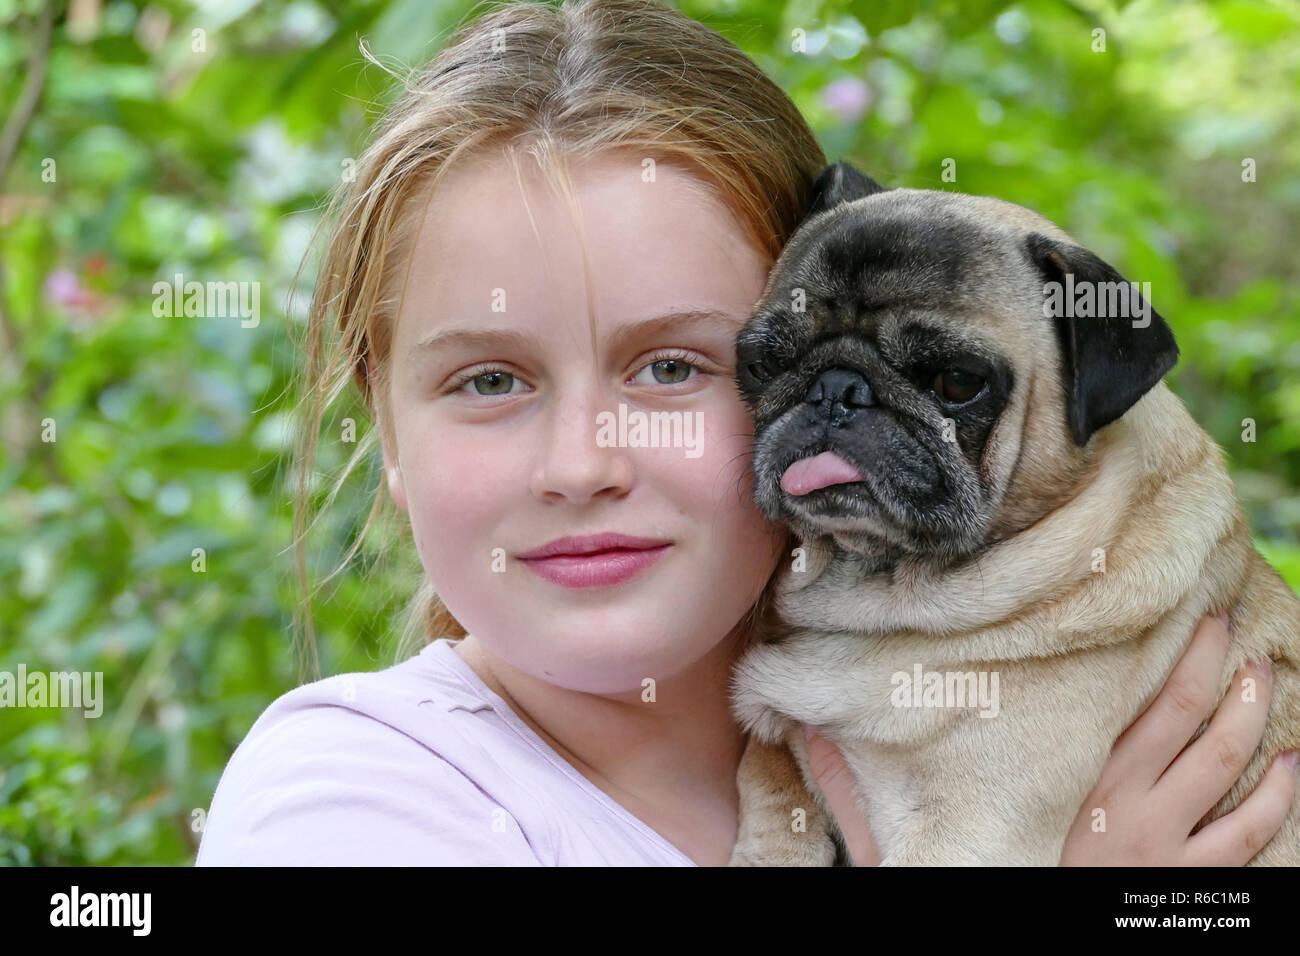 Two Friends, Girl And Her Beige Pug - Stock Image